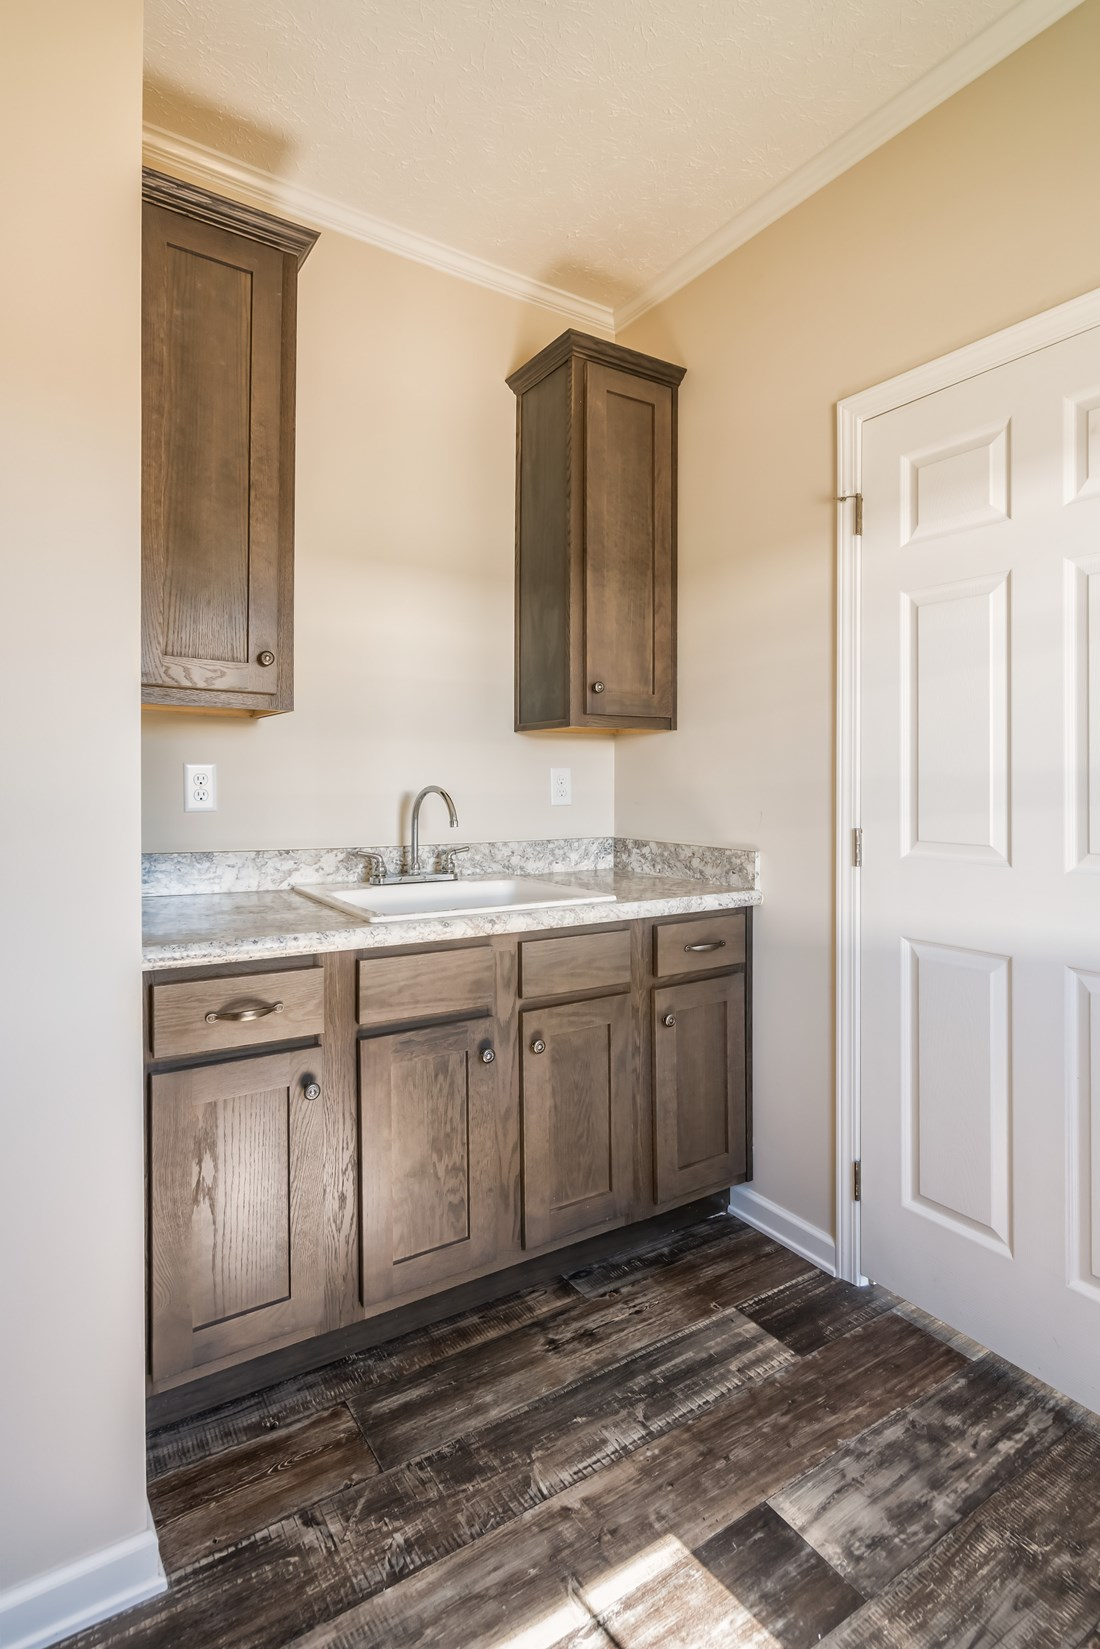 The 3554 JAMESTOWN Utility Room. This Manufactured Mobile Home features 4 bedrooms and 2 baths.